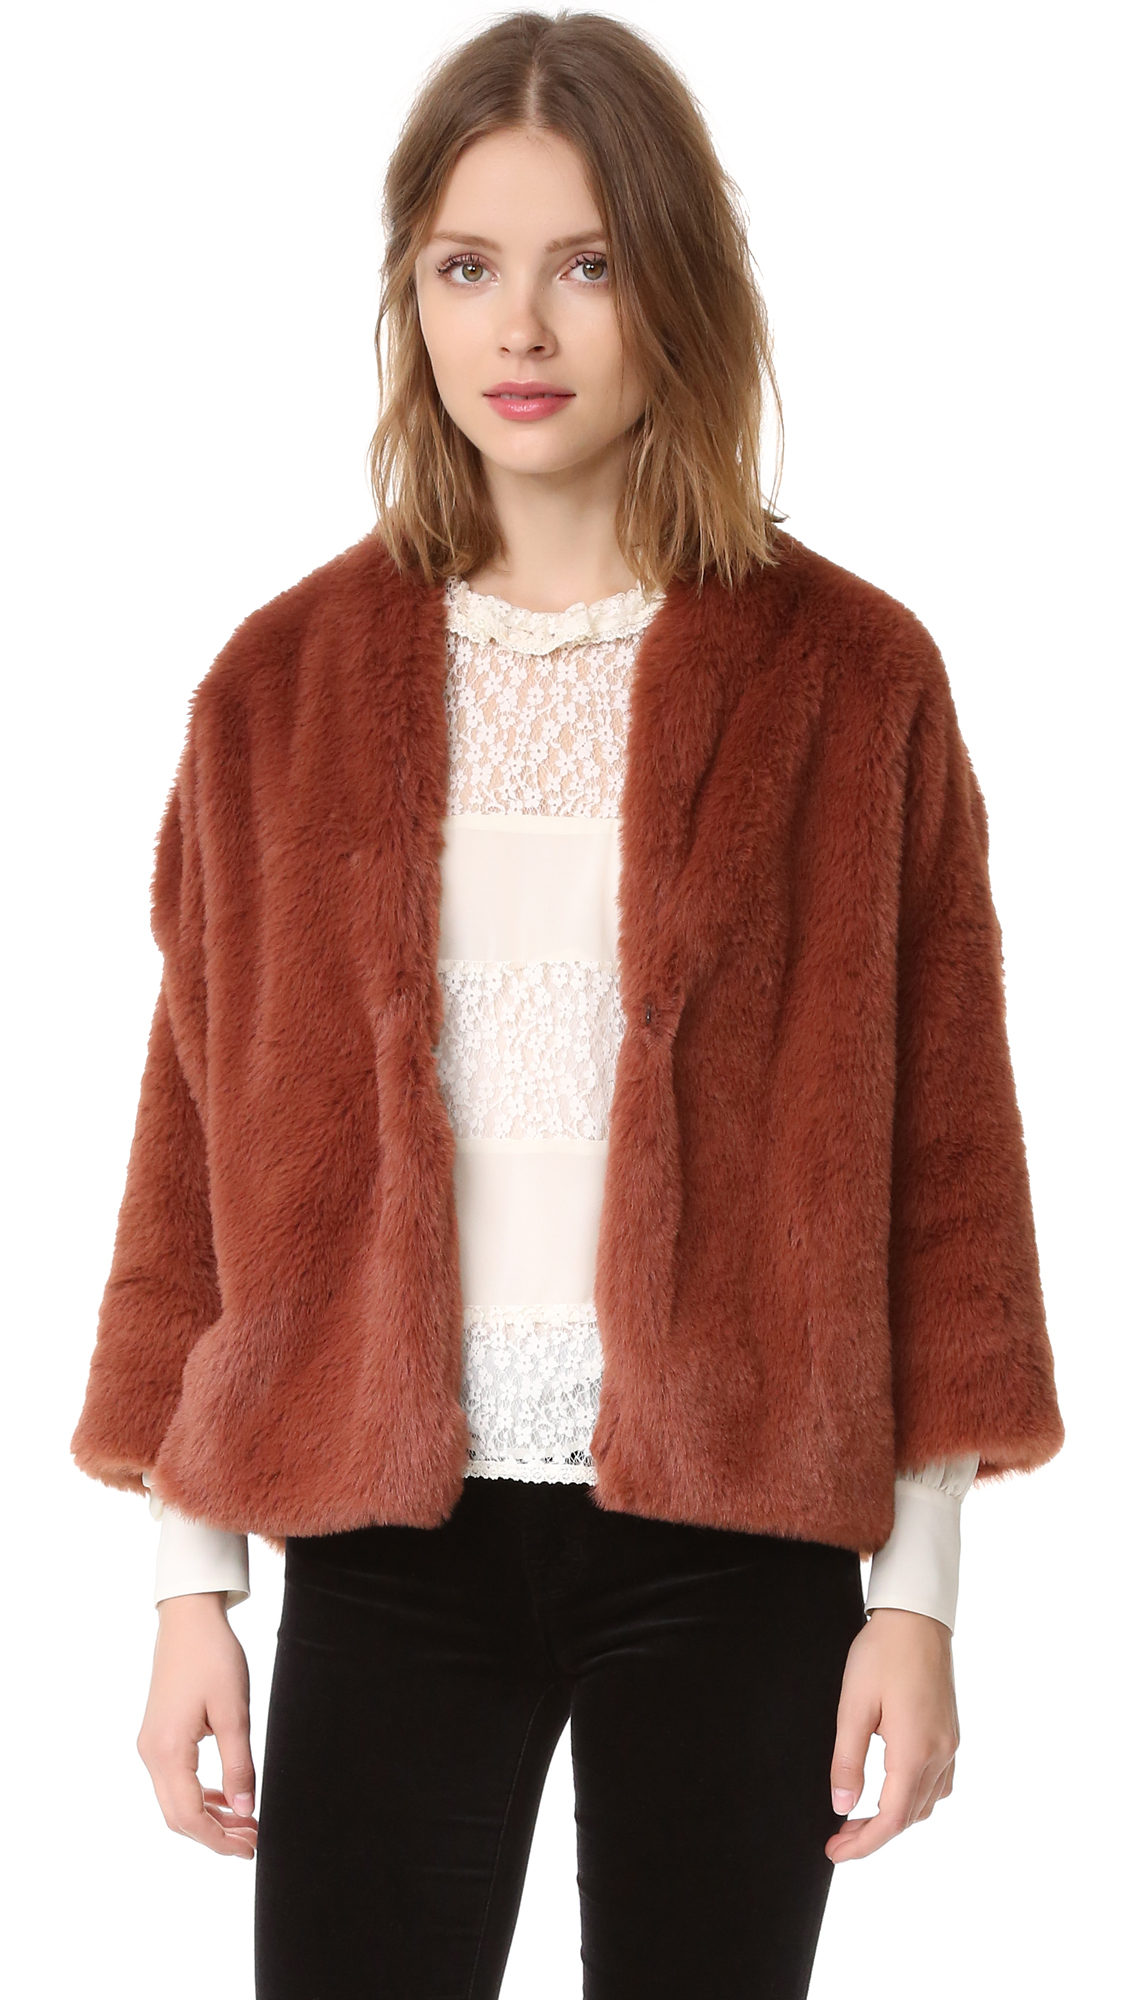 An Otto d'ame jacket made from plush faux fur. A hook and eye closure fastens the placket. Uneven hem. 3/4 sleeves. Lined. Fabric: Faux fur. Shell: 100% polyester. Lining: 100% viscose. Dry clean. Made in Italy. Measurements Length: 24.5in / 62